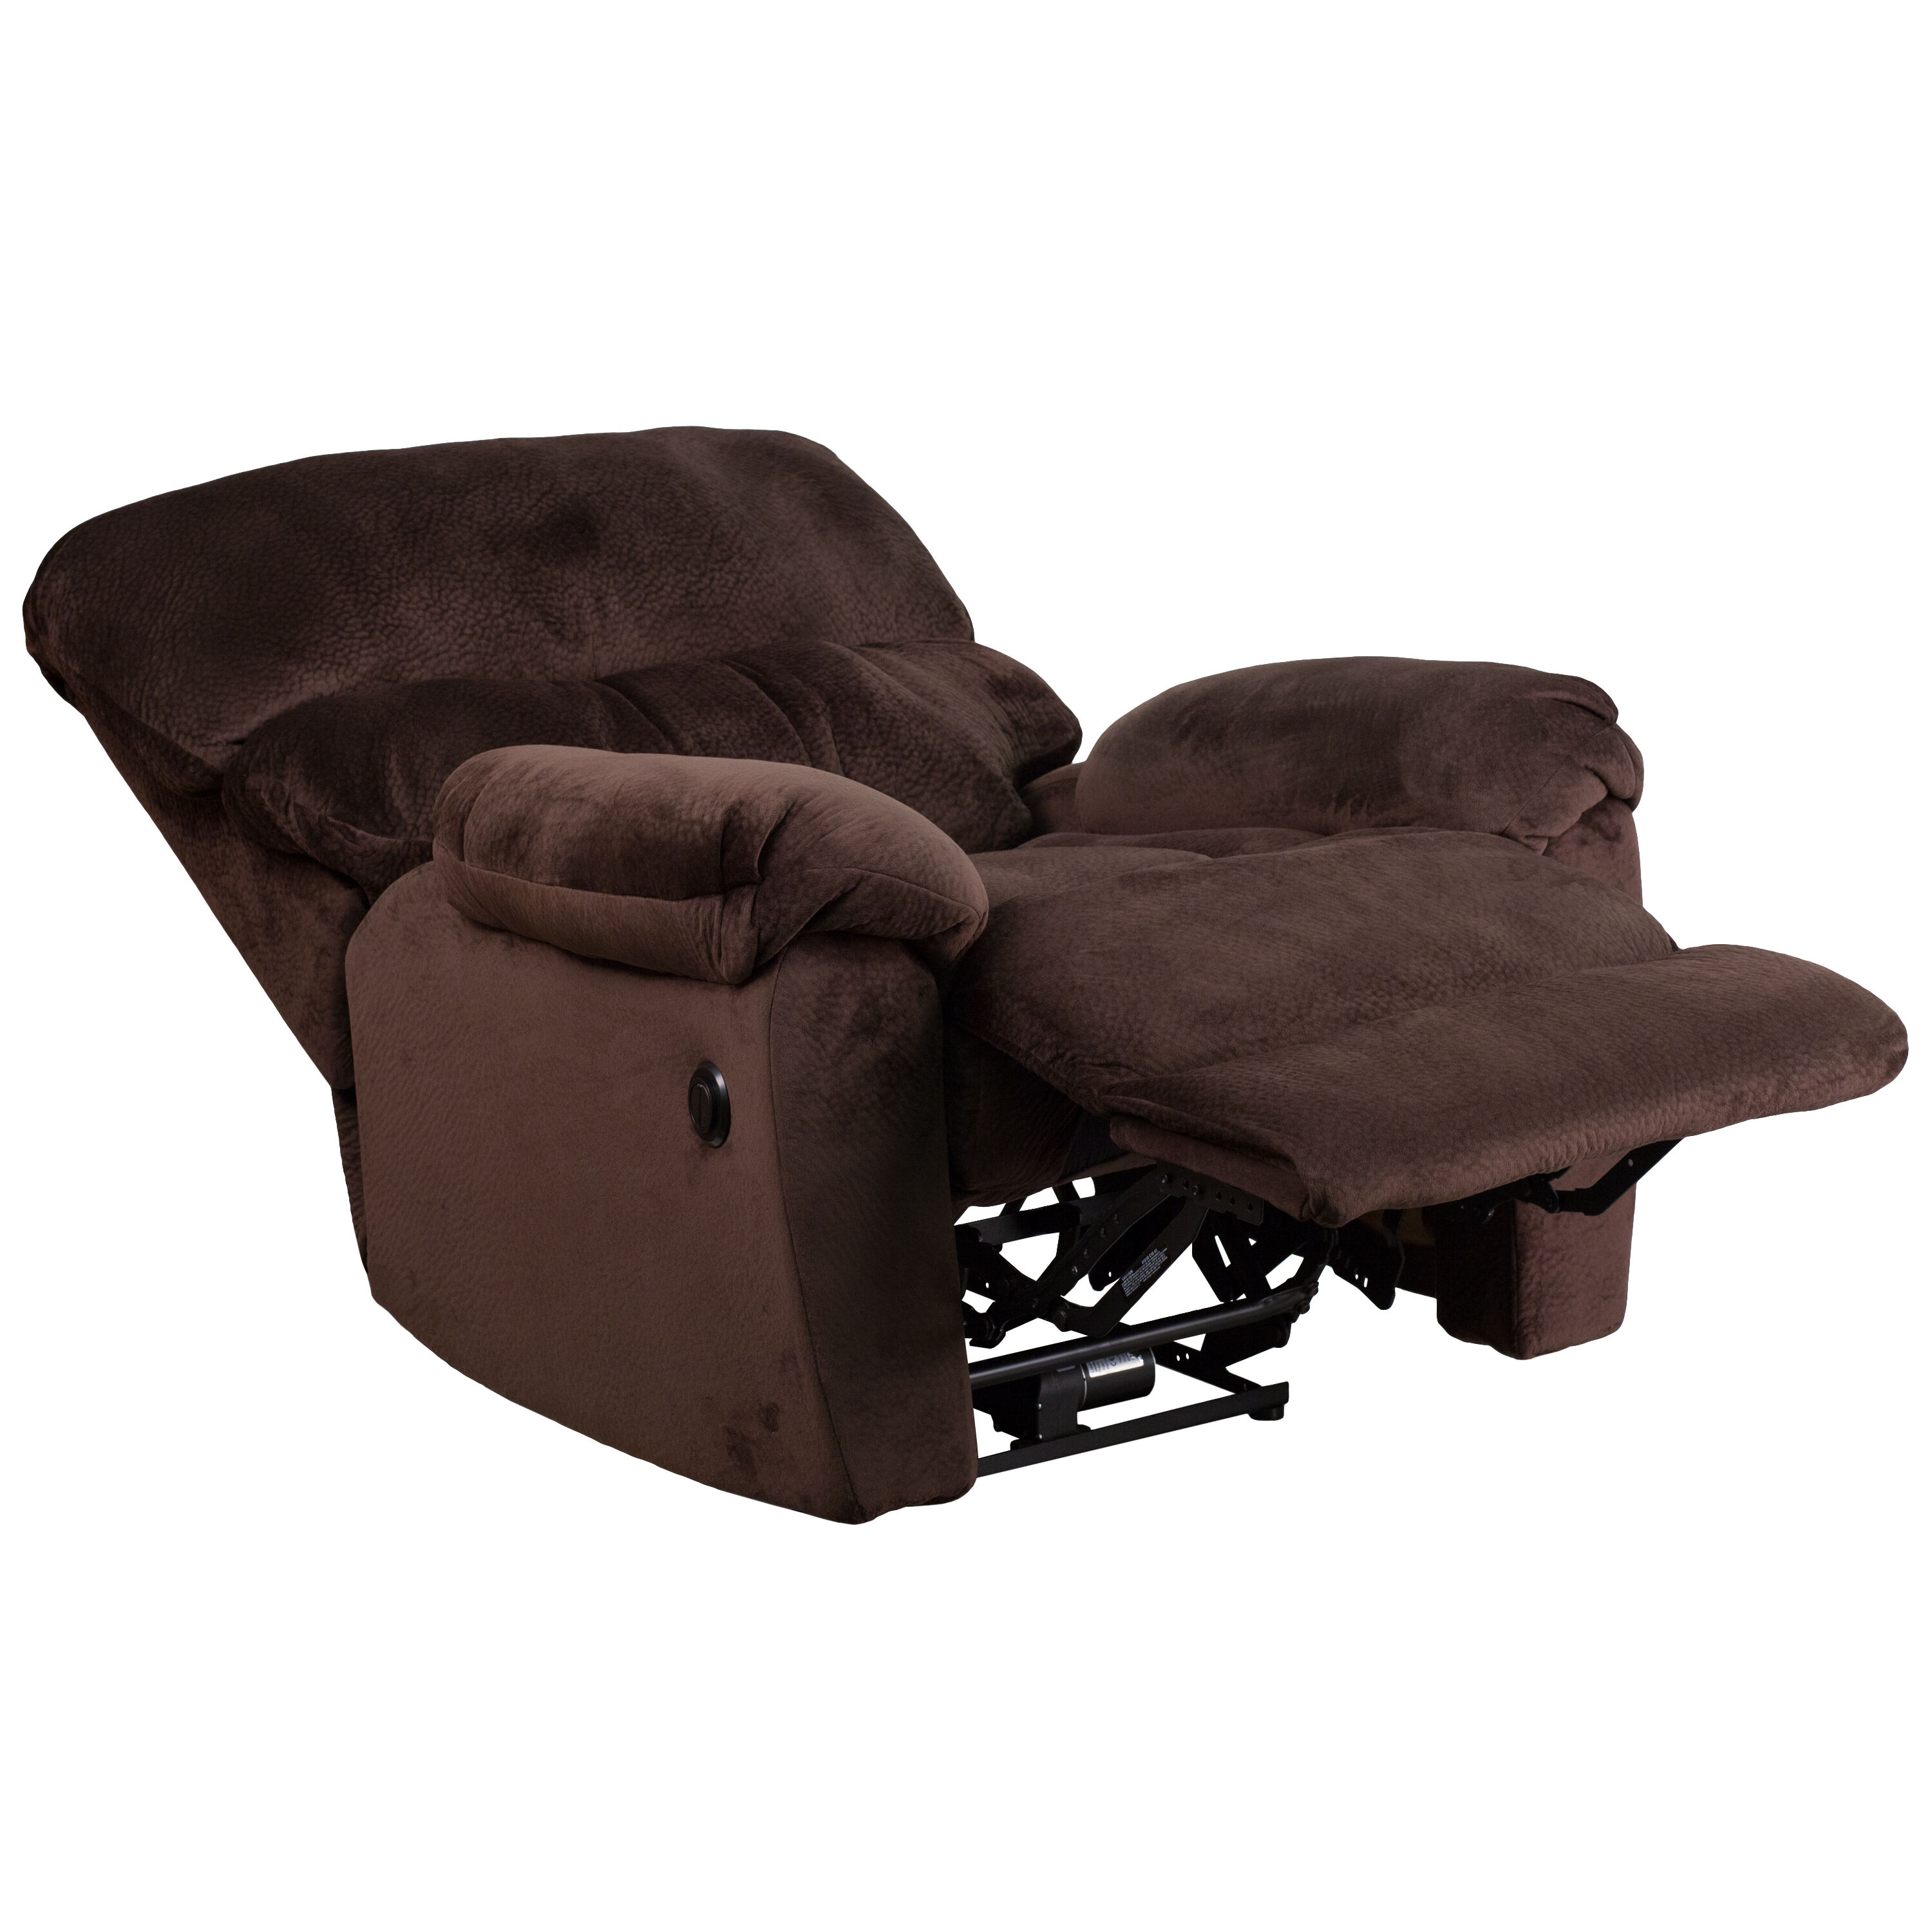 push button recliner chairs wooden rocking chair plans chocolate mic power am p9998 5980 gg bizchair